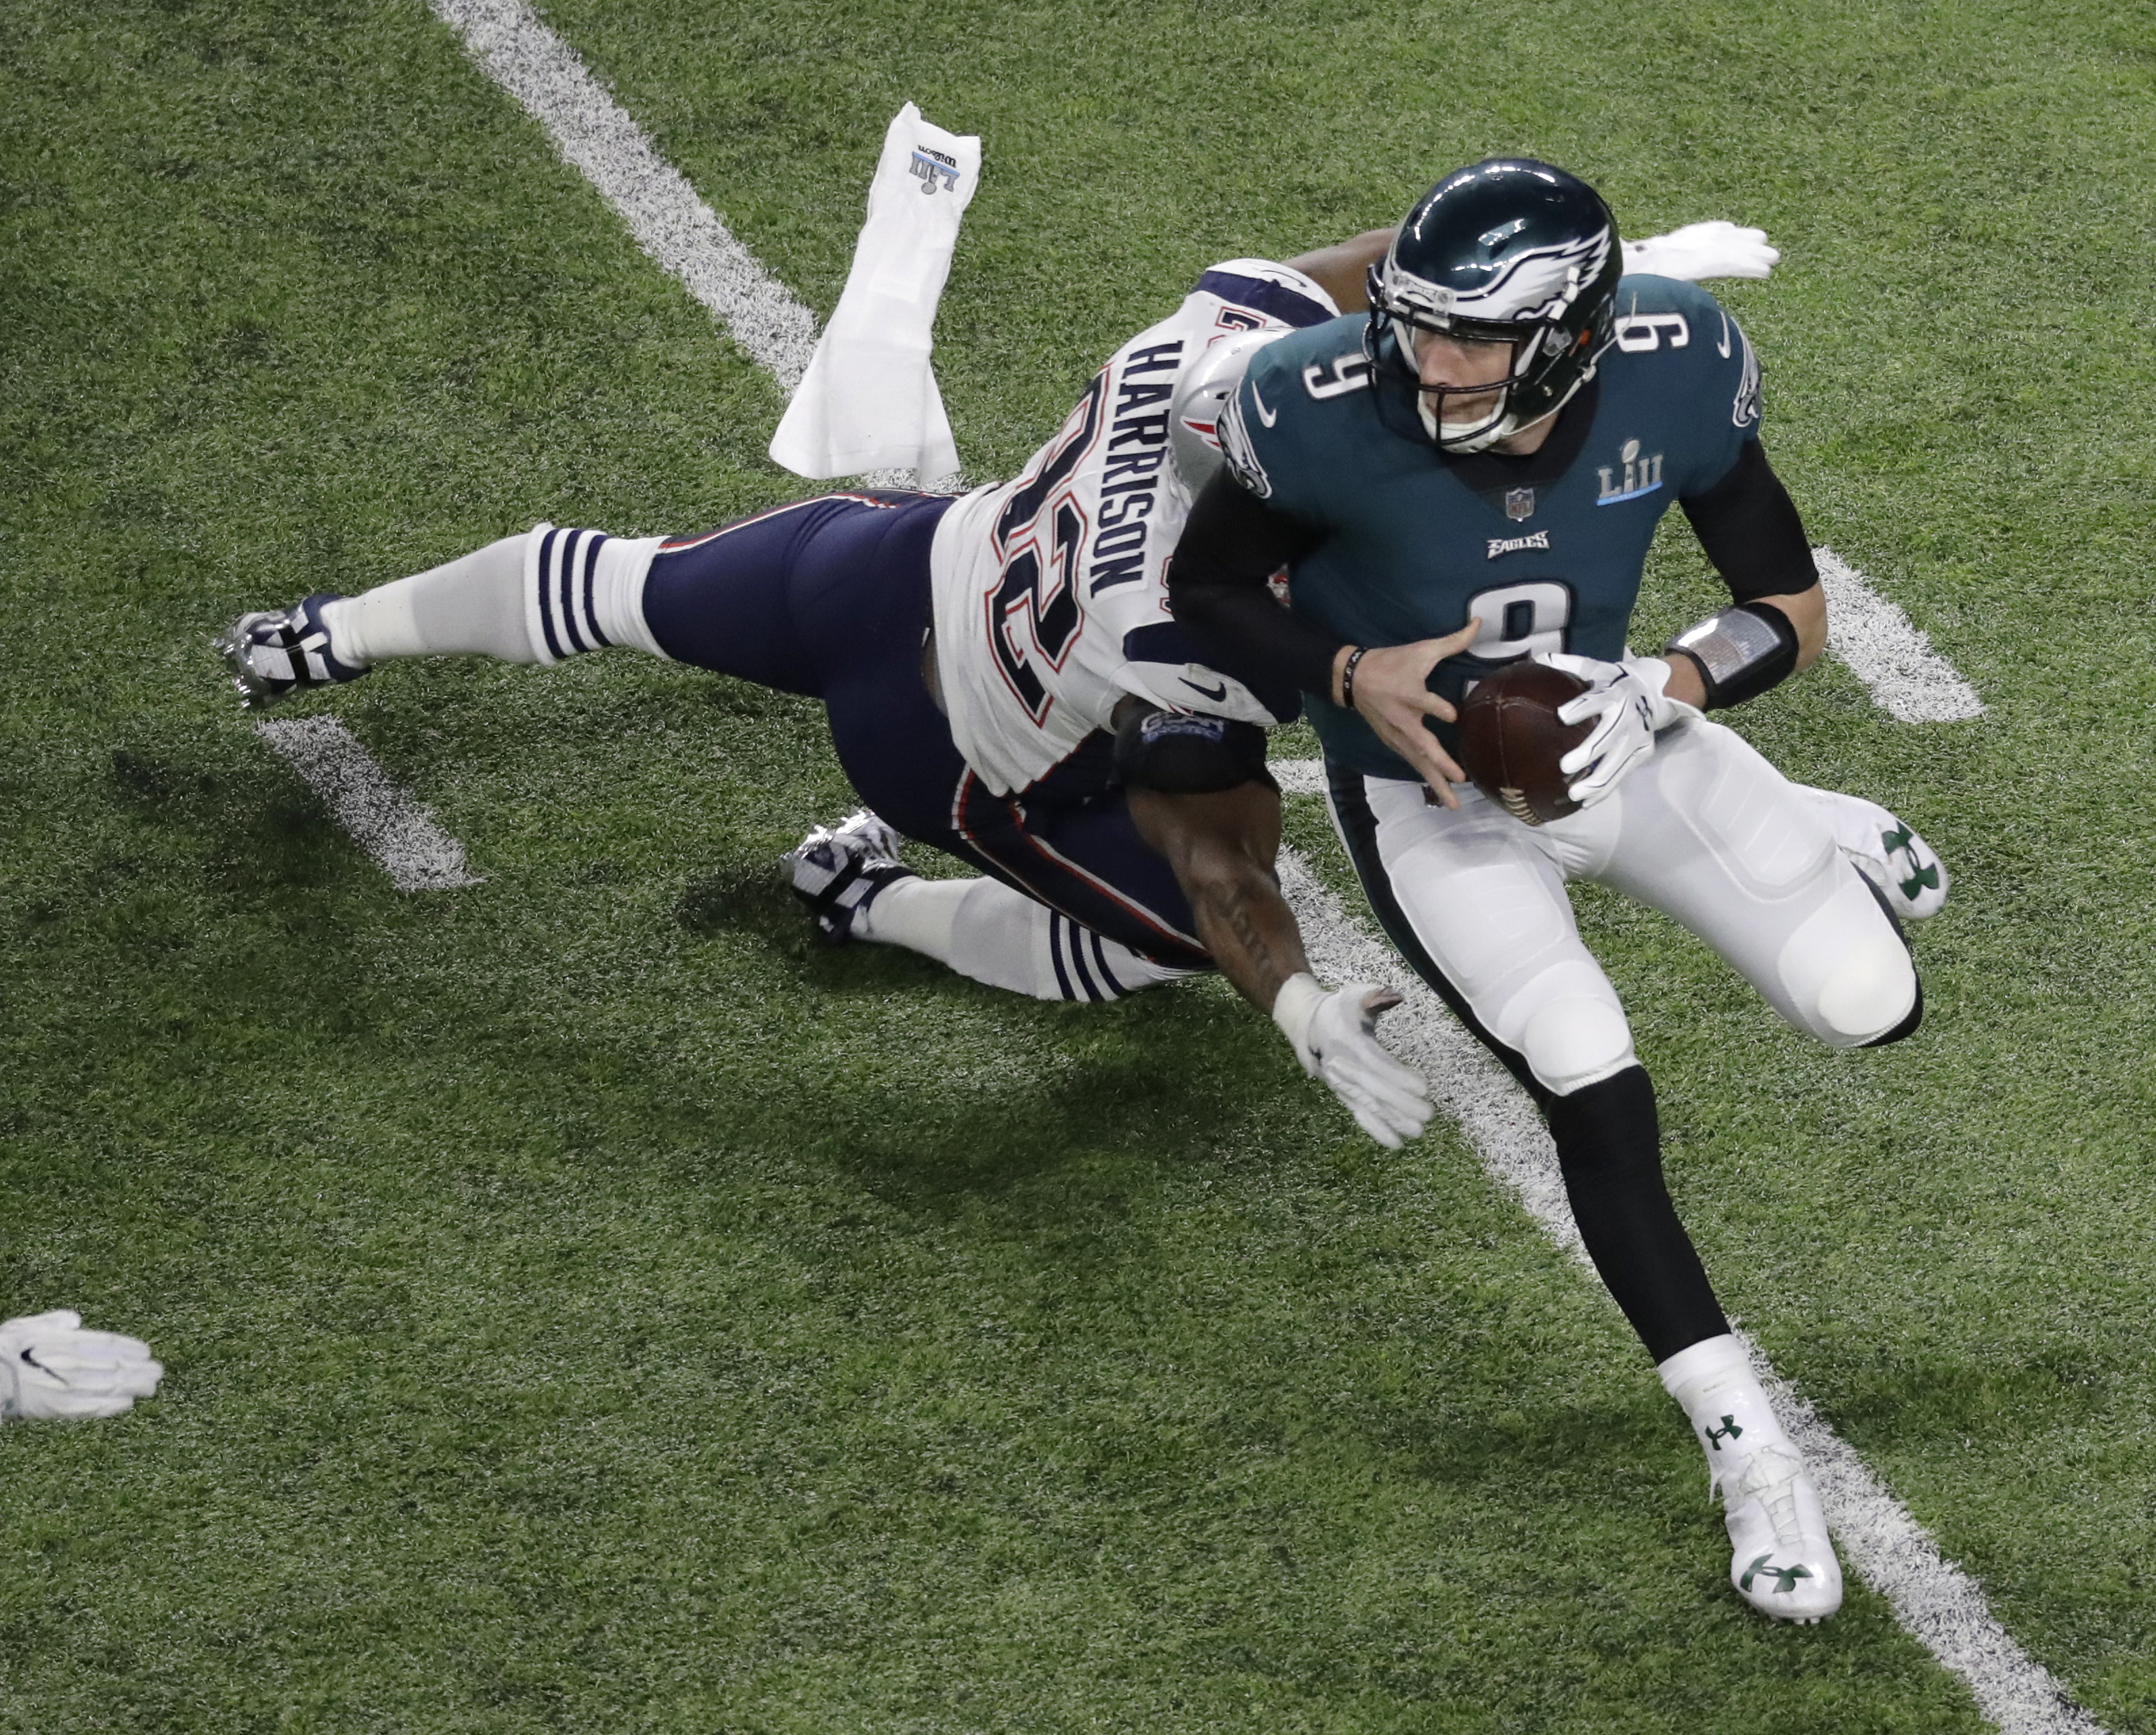 "<div class=""meta image-caption""><div class=""origin-logo origin-image ap""><span>AP</span></div><span class=""caption-text"">Philadelphia Eagles quarterback Nick Foles (9) runs around New England Patriots outside linebacker James Harrison during the first half of the NFL Super Bowl 52 football game. (AP Photo/Eric Gay)</span></div>"